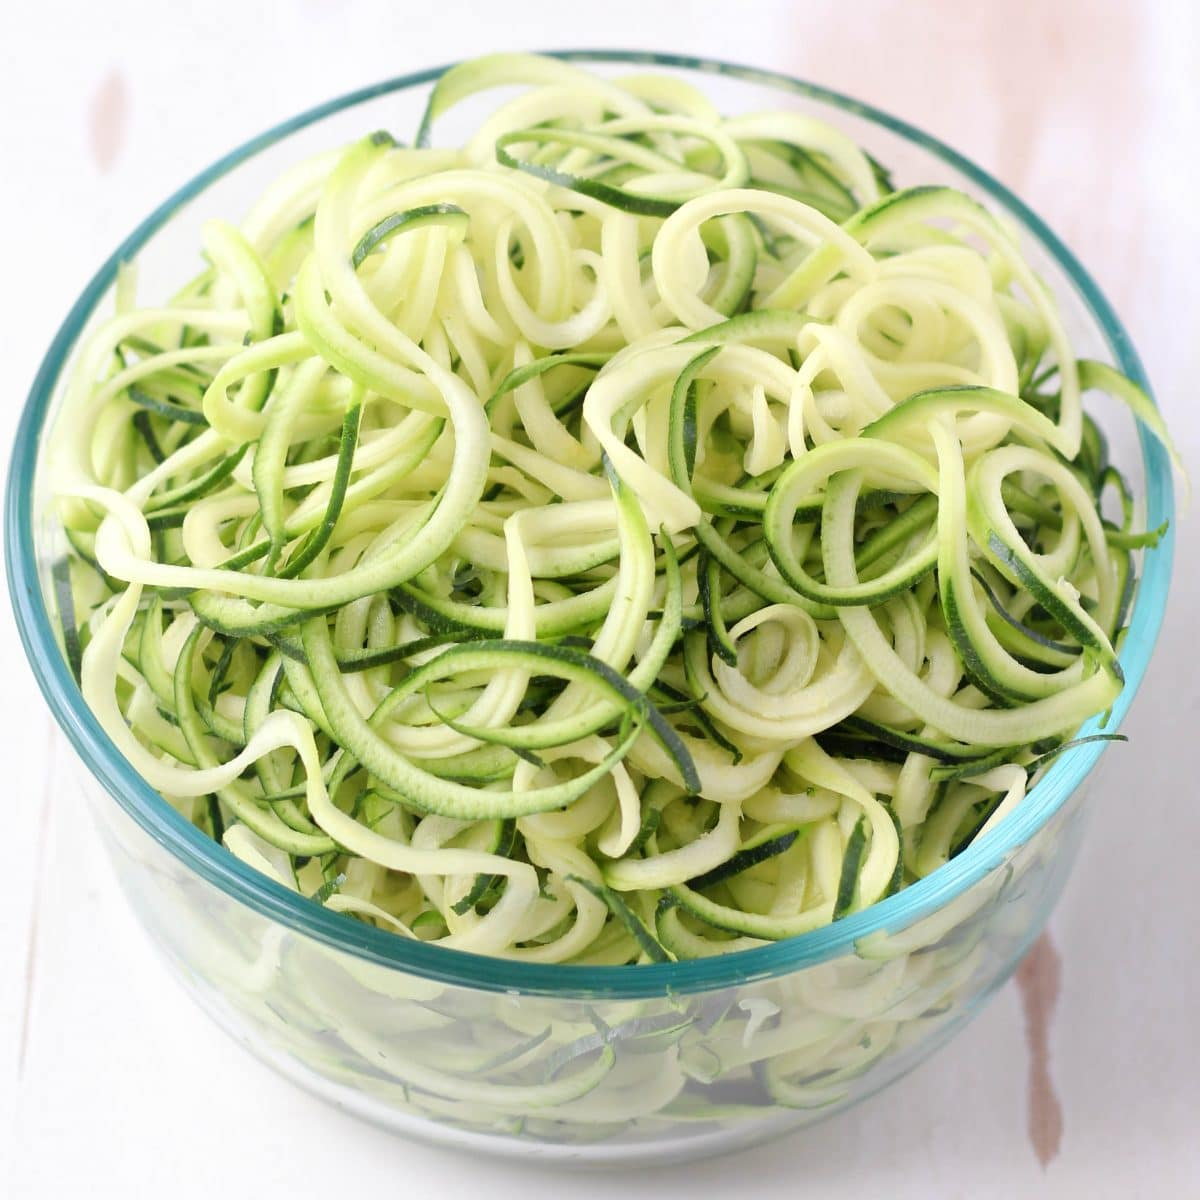 how-to-make-zucchini-noodles-image